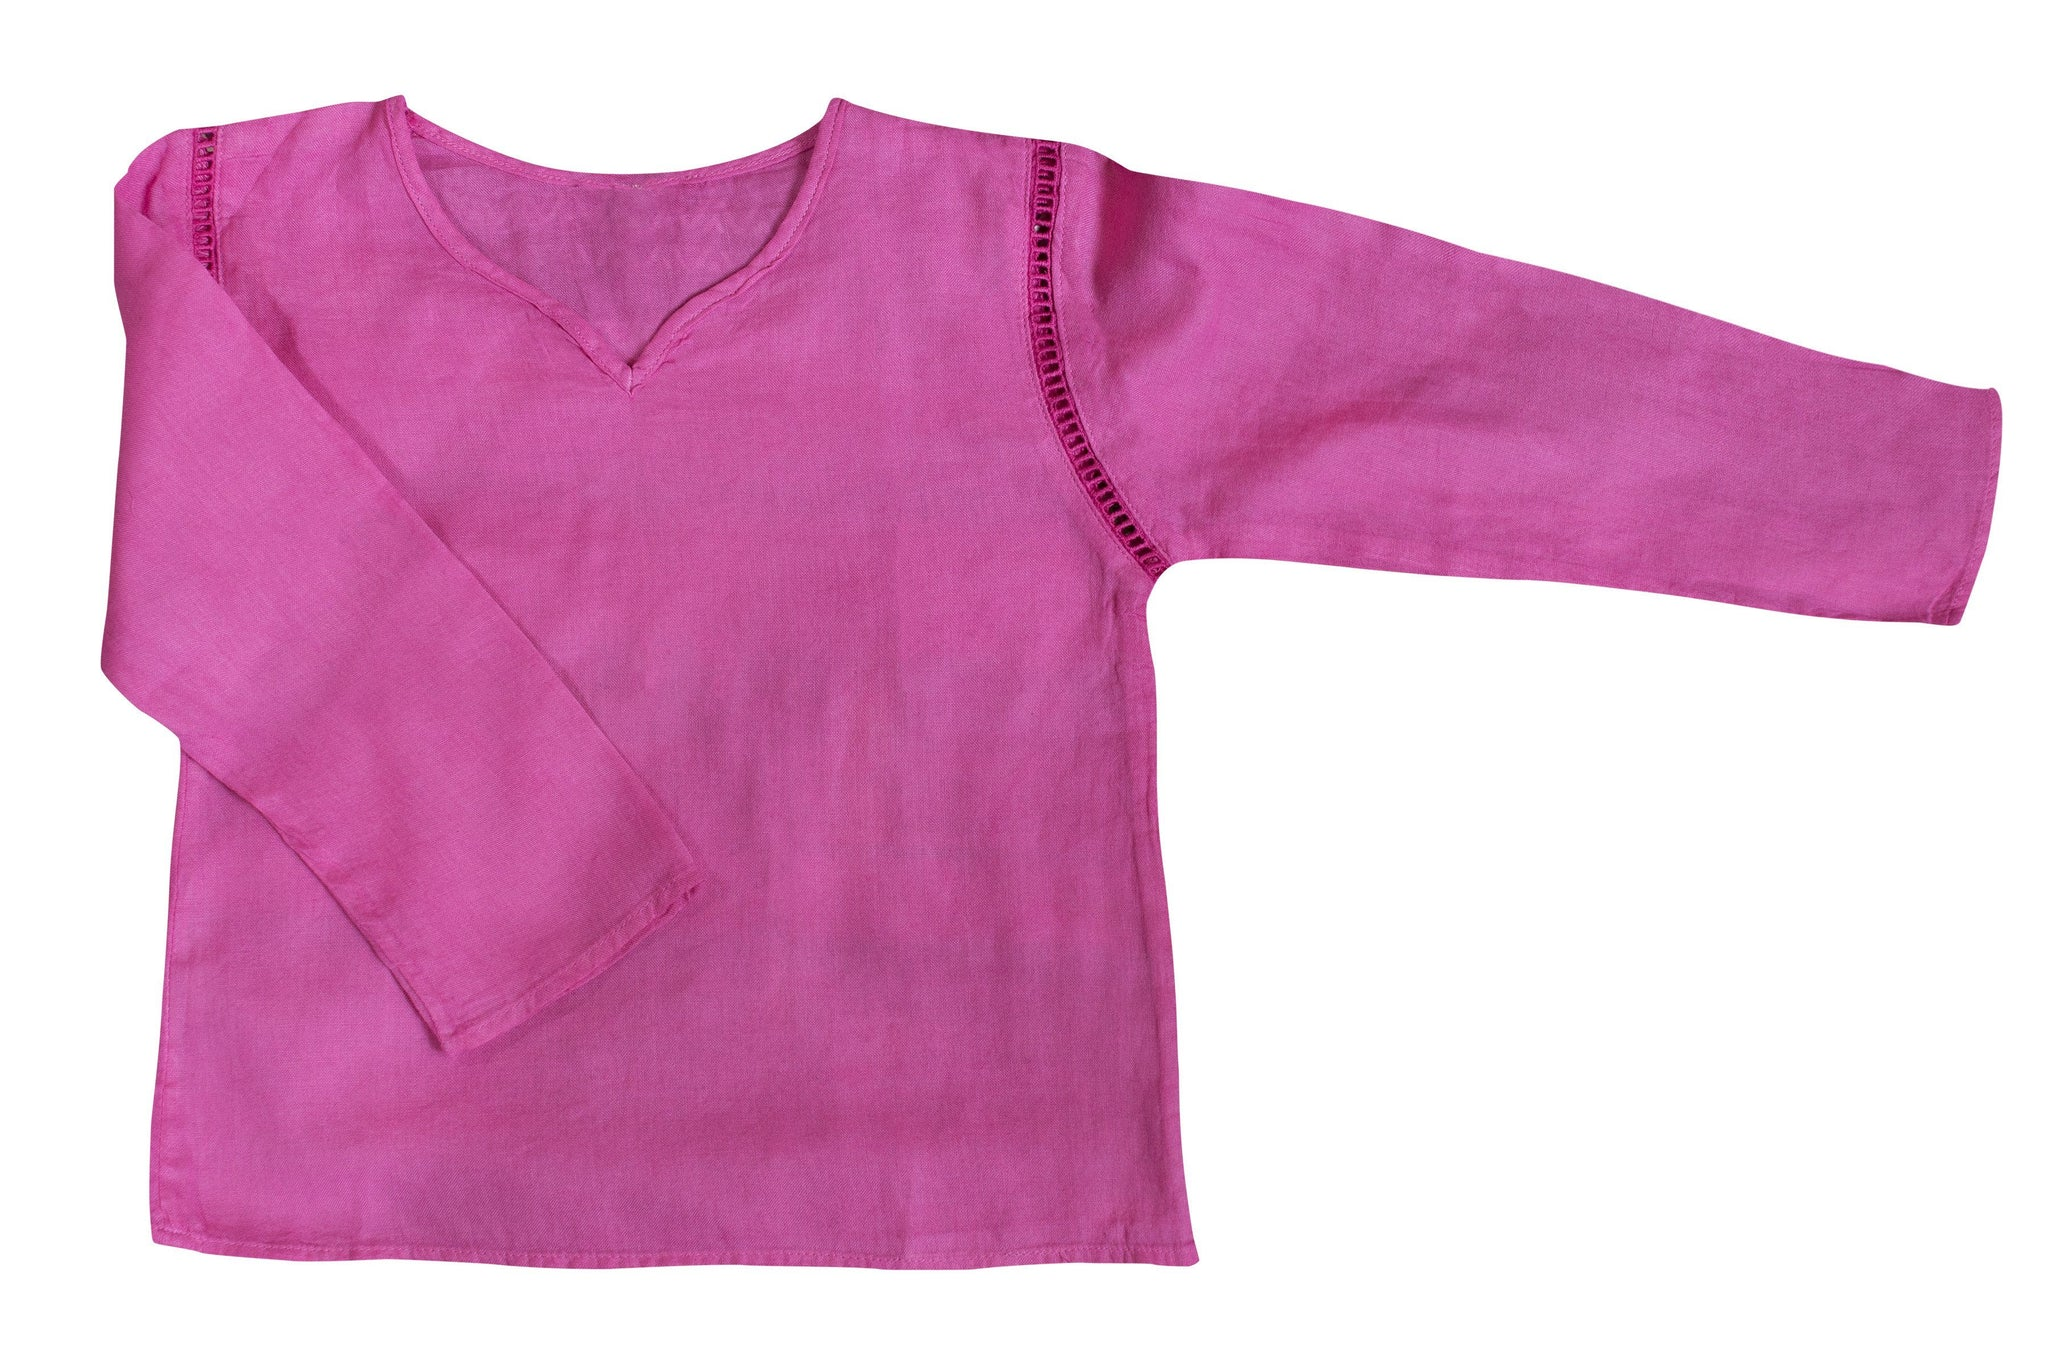 Kids Boy Girl Unisex Cotton Shirt Top V Neck 3/4 sleeve S Plain - CCCollections